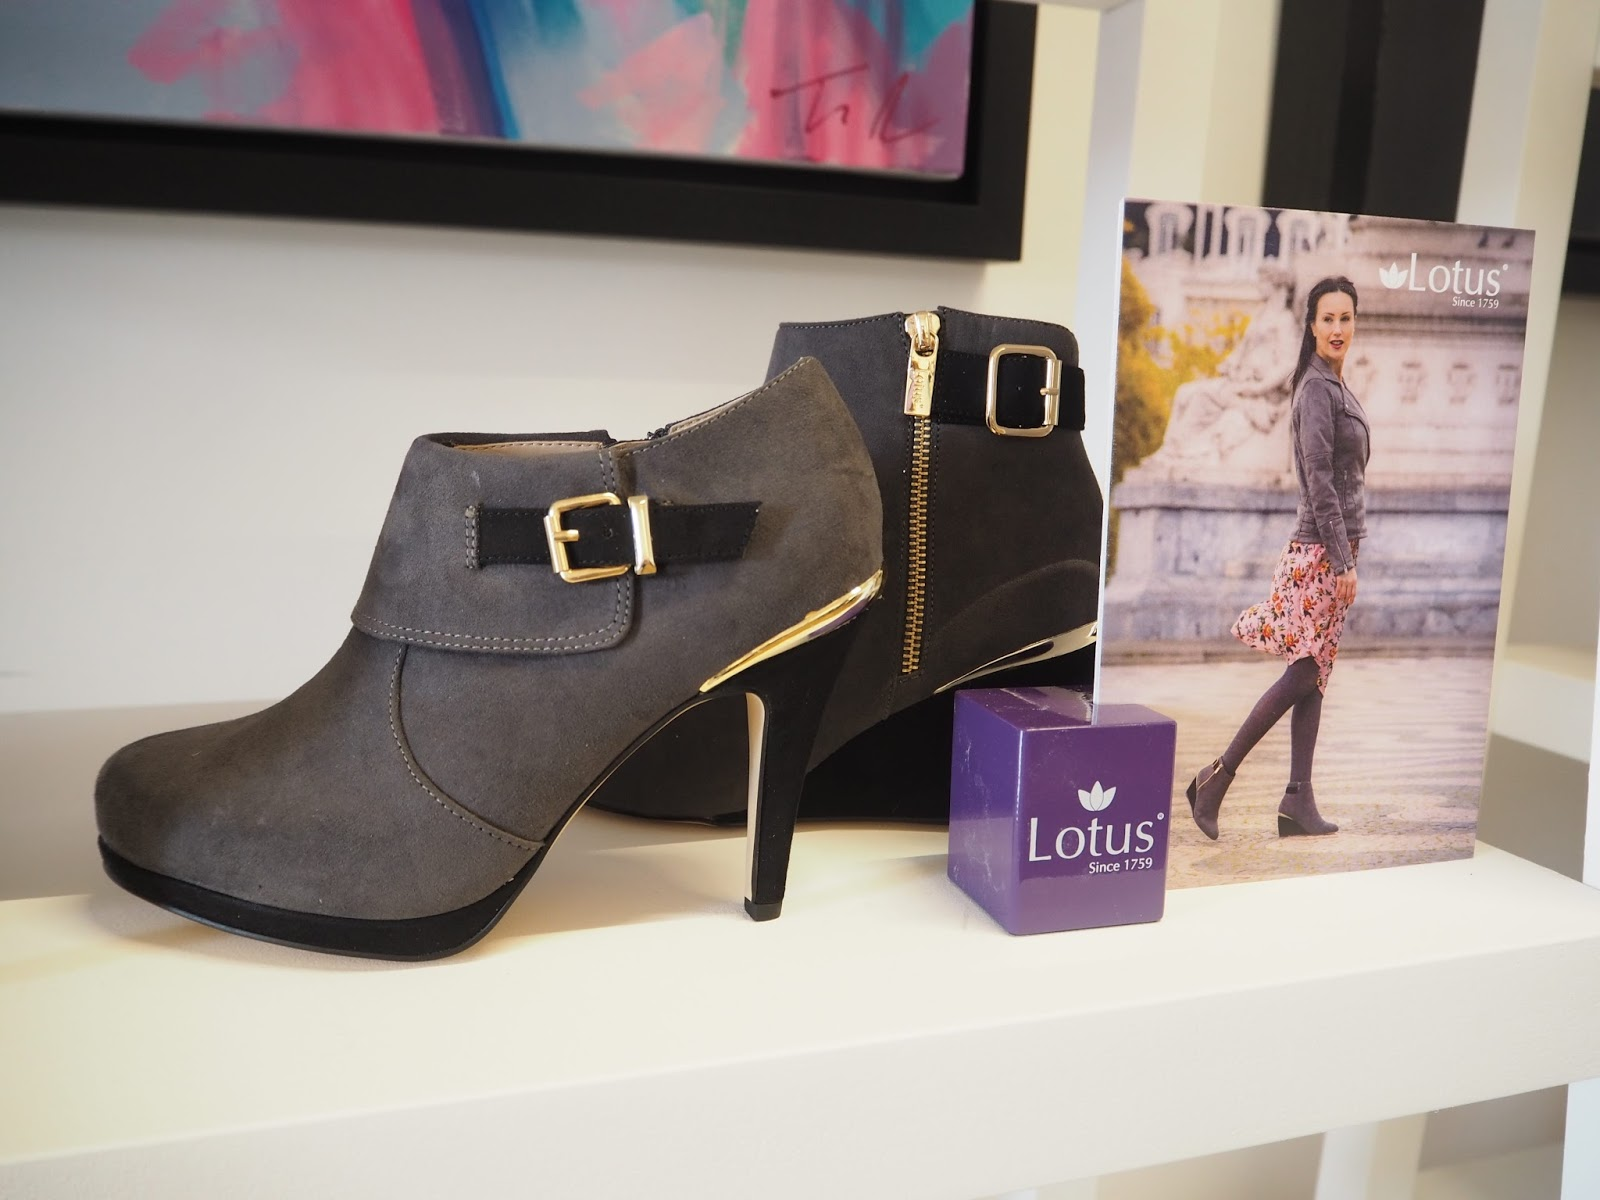 What-Lizzy-Loves-Lotus-Press-Day-AW17-grey-high-heels-ankle-boots-gold-hardwear